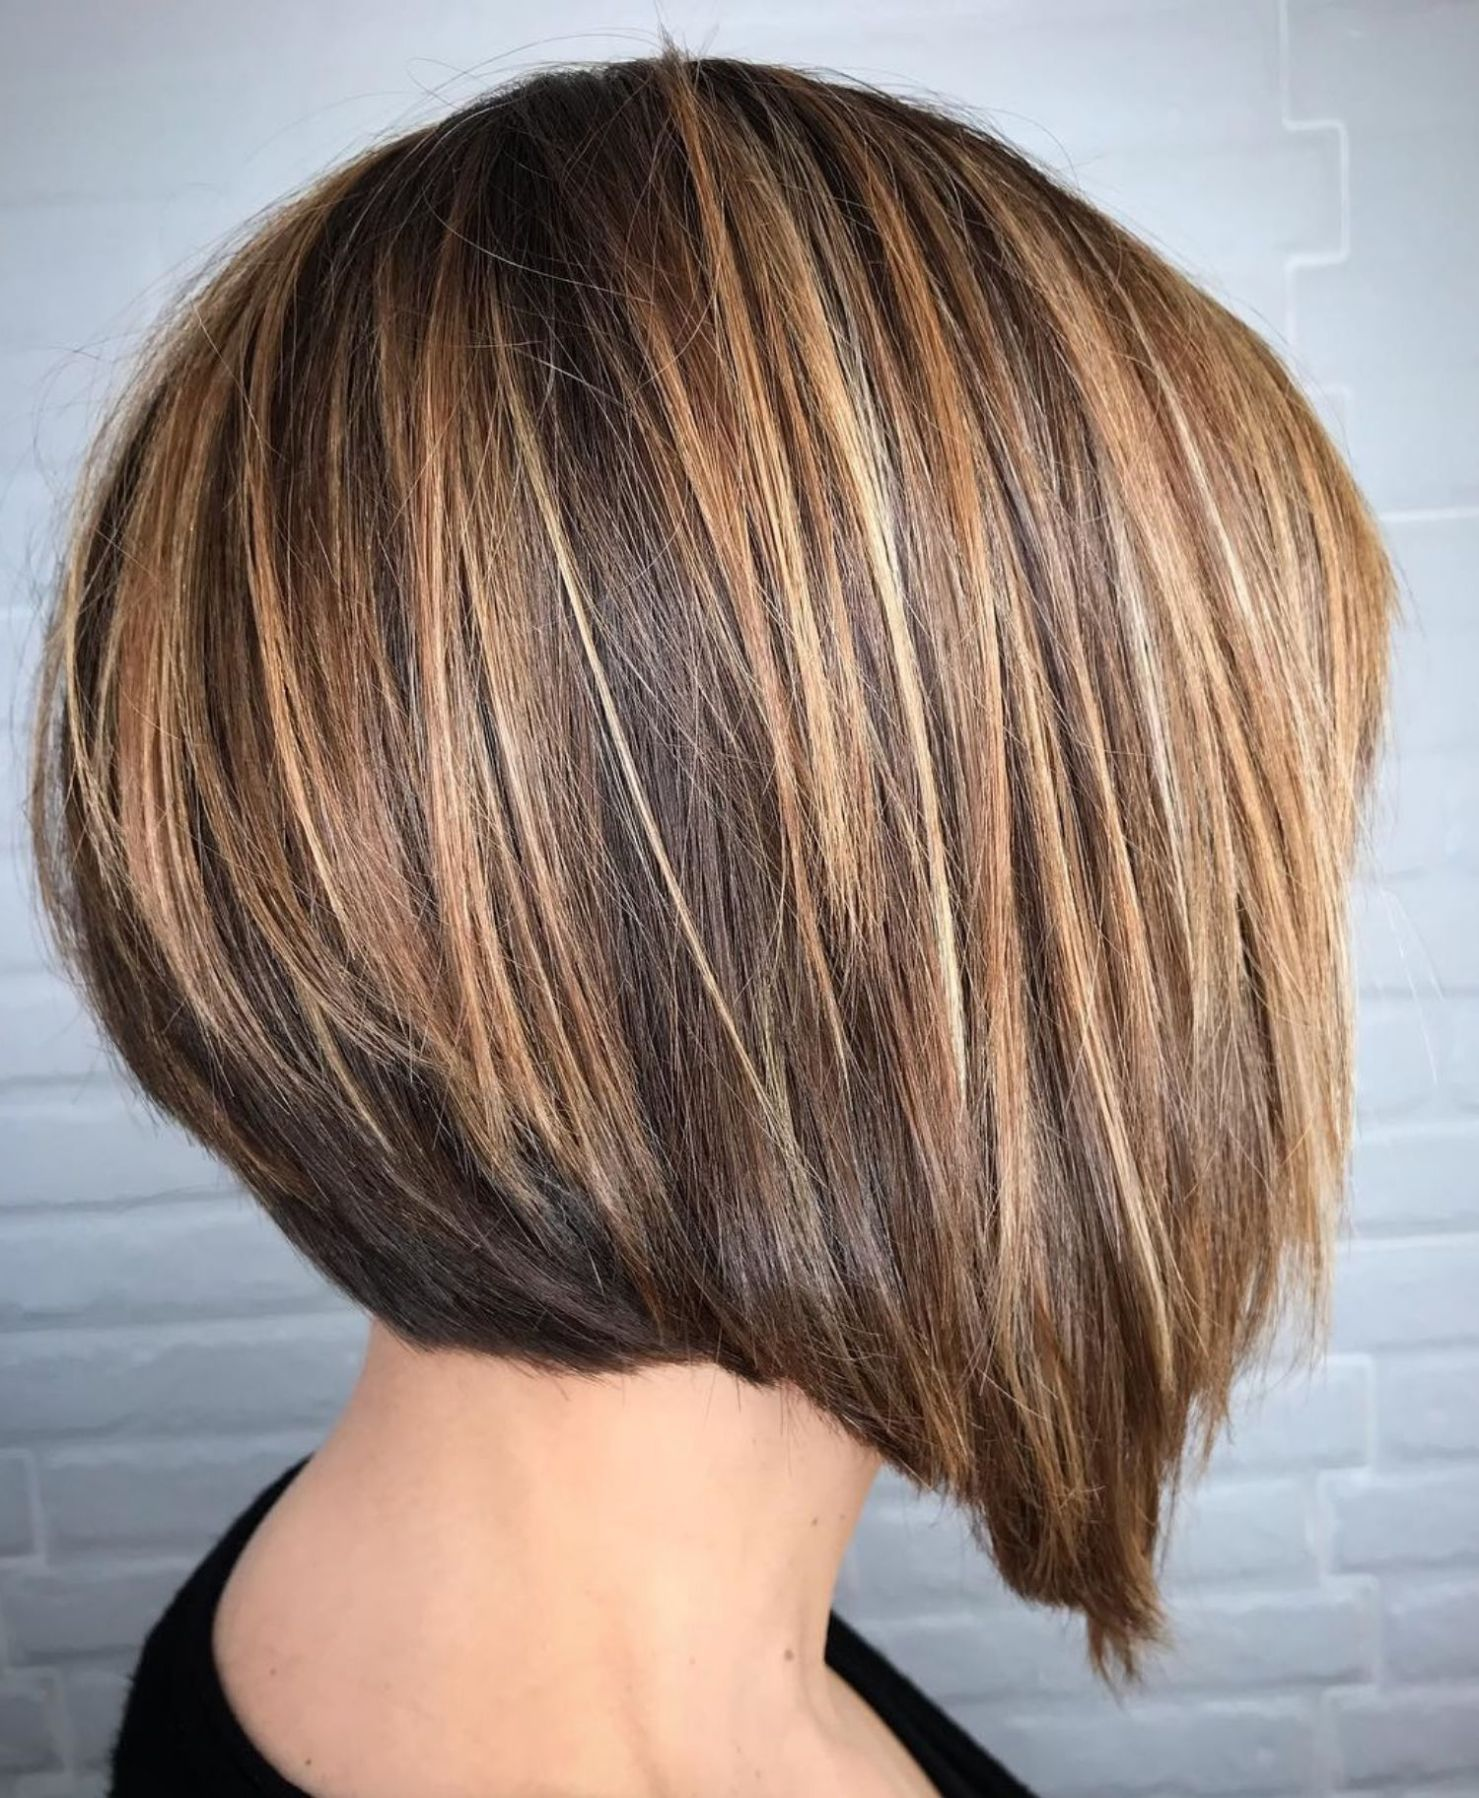 5 Hairstyle Ideas Hairstyle For Bride Ideas Hairstyle Ideas Marriage Short Hairstyle Ideas 2 In 2020 Thick Hair Styles Haircut For Thick Hair Medium Bob Hairstyles